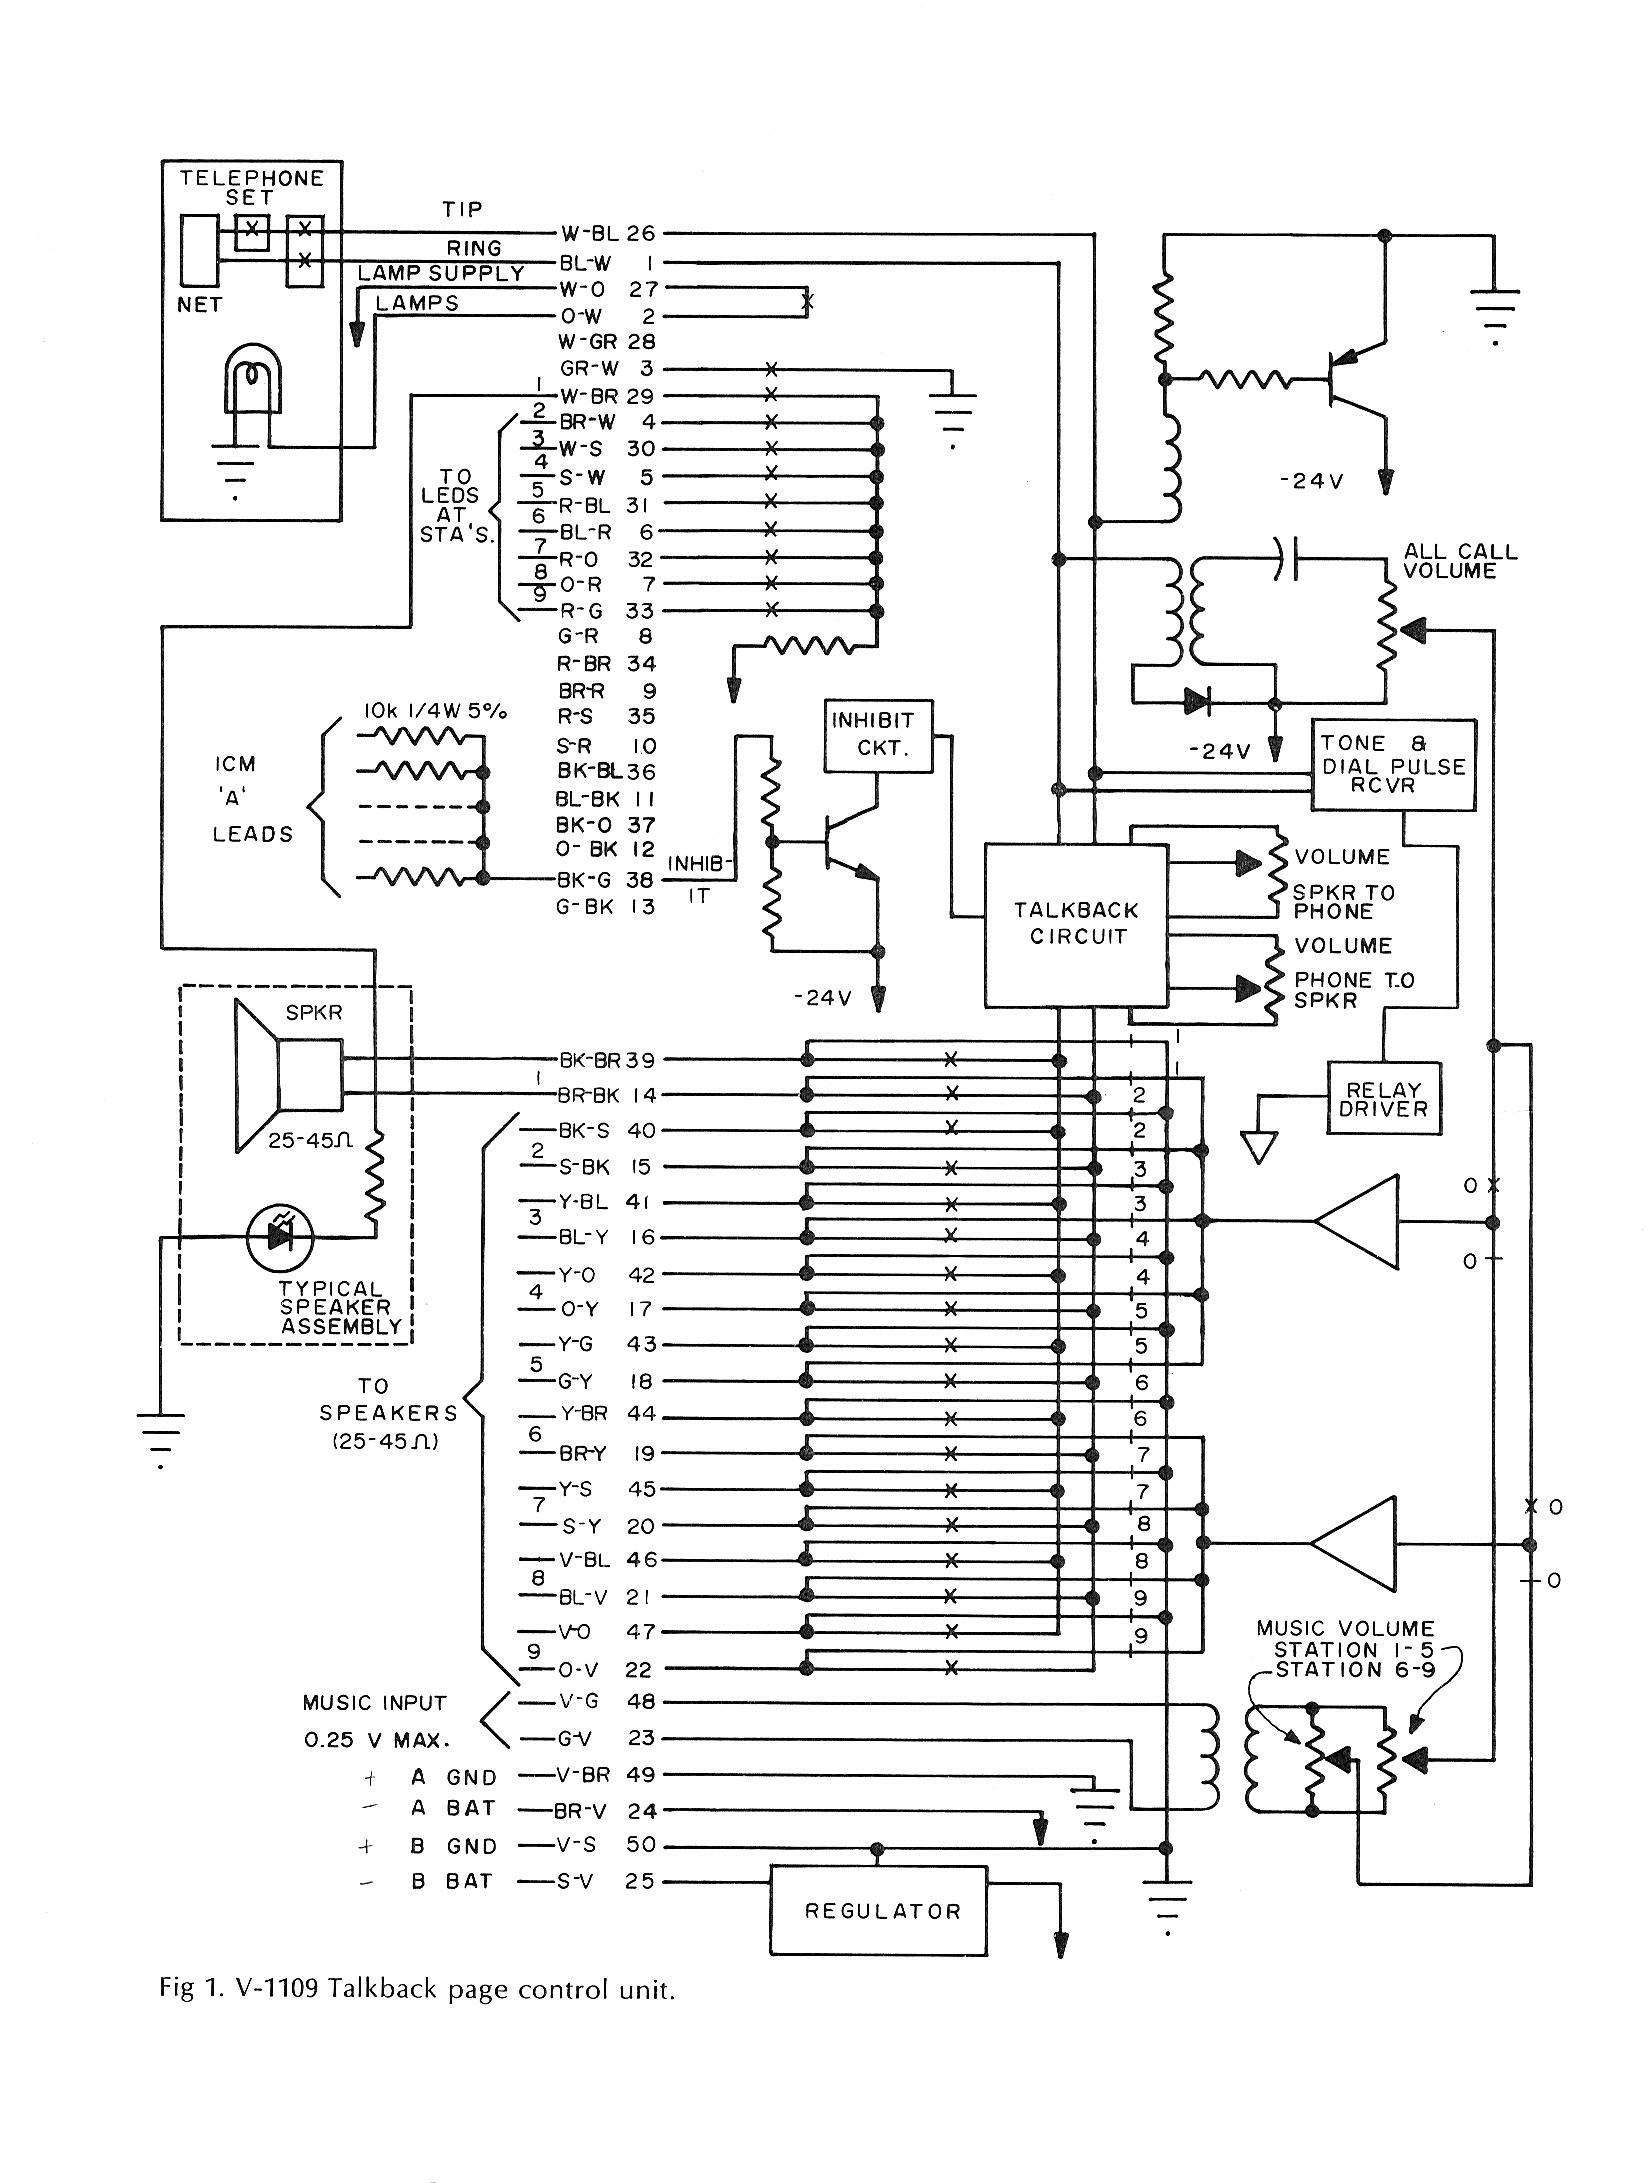 valcom1109 telephone technical references aiphone lef 3l wiring diagram at gsmx.co